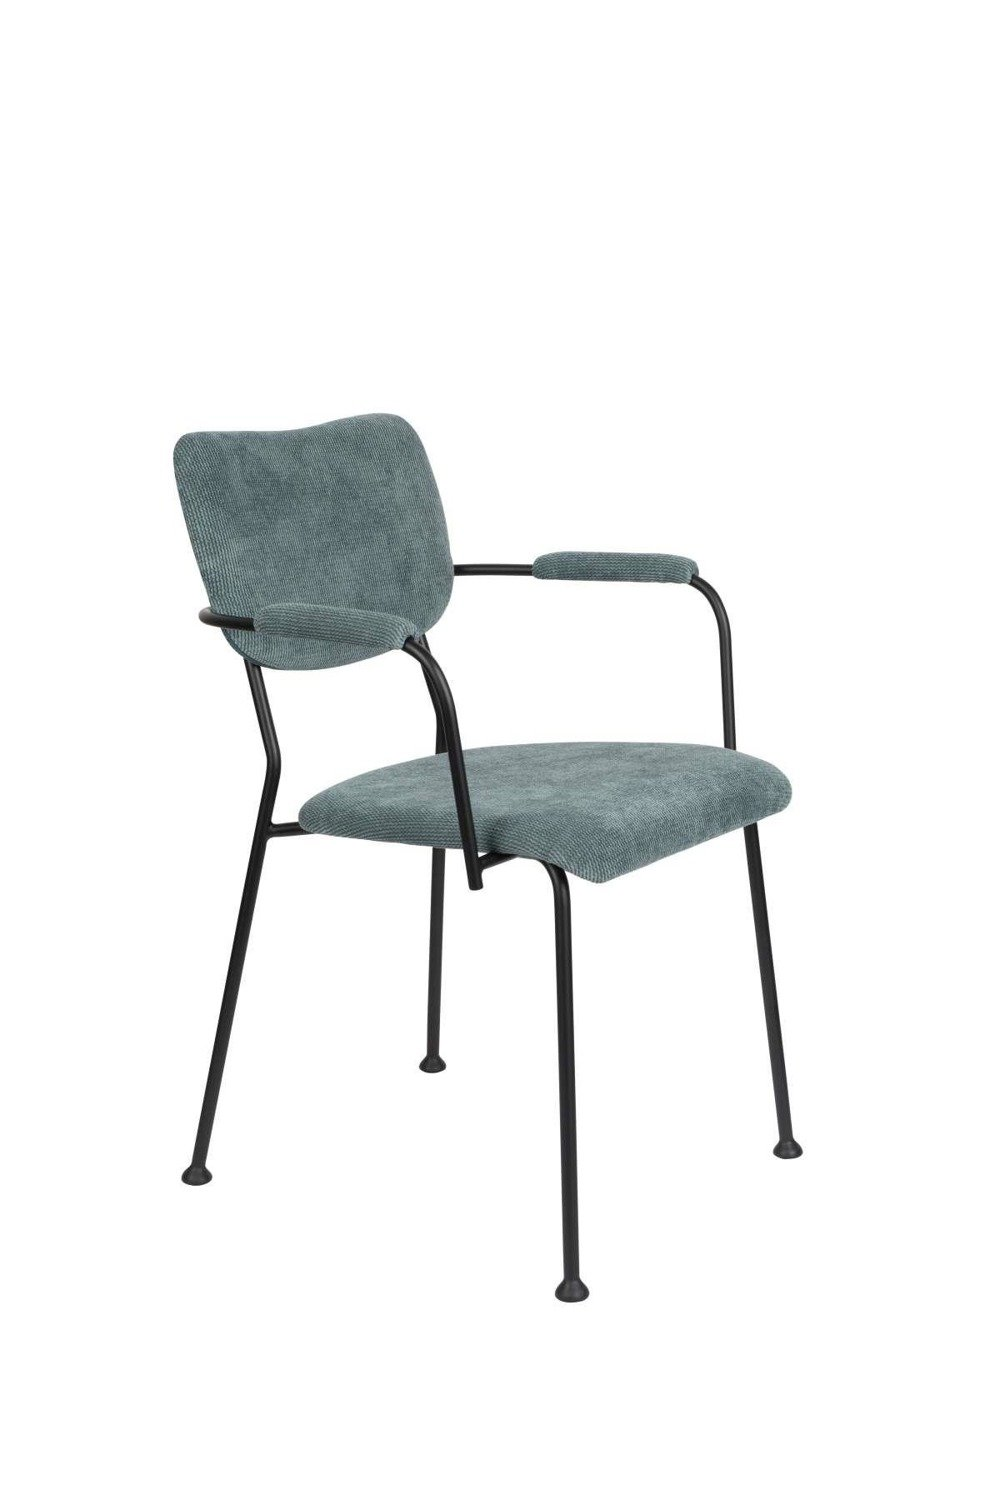 Zuiver :: Chair with armrests gray-blue BENSON